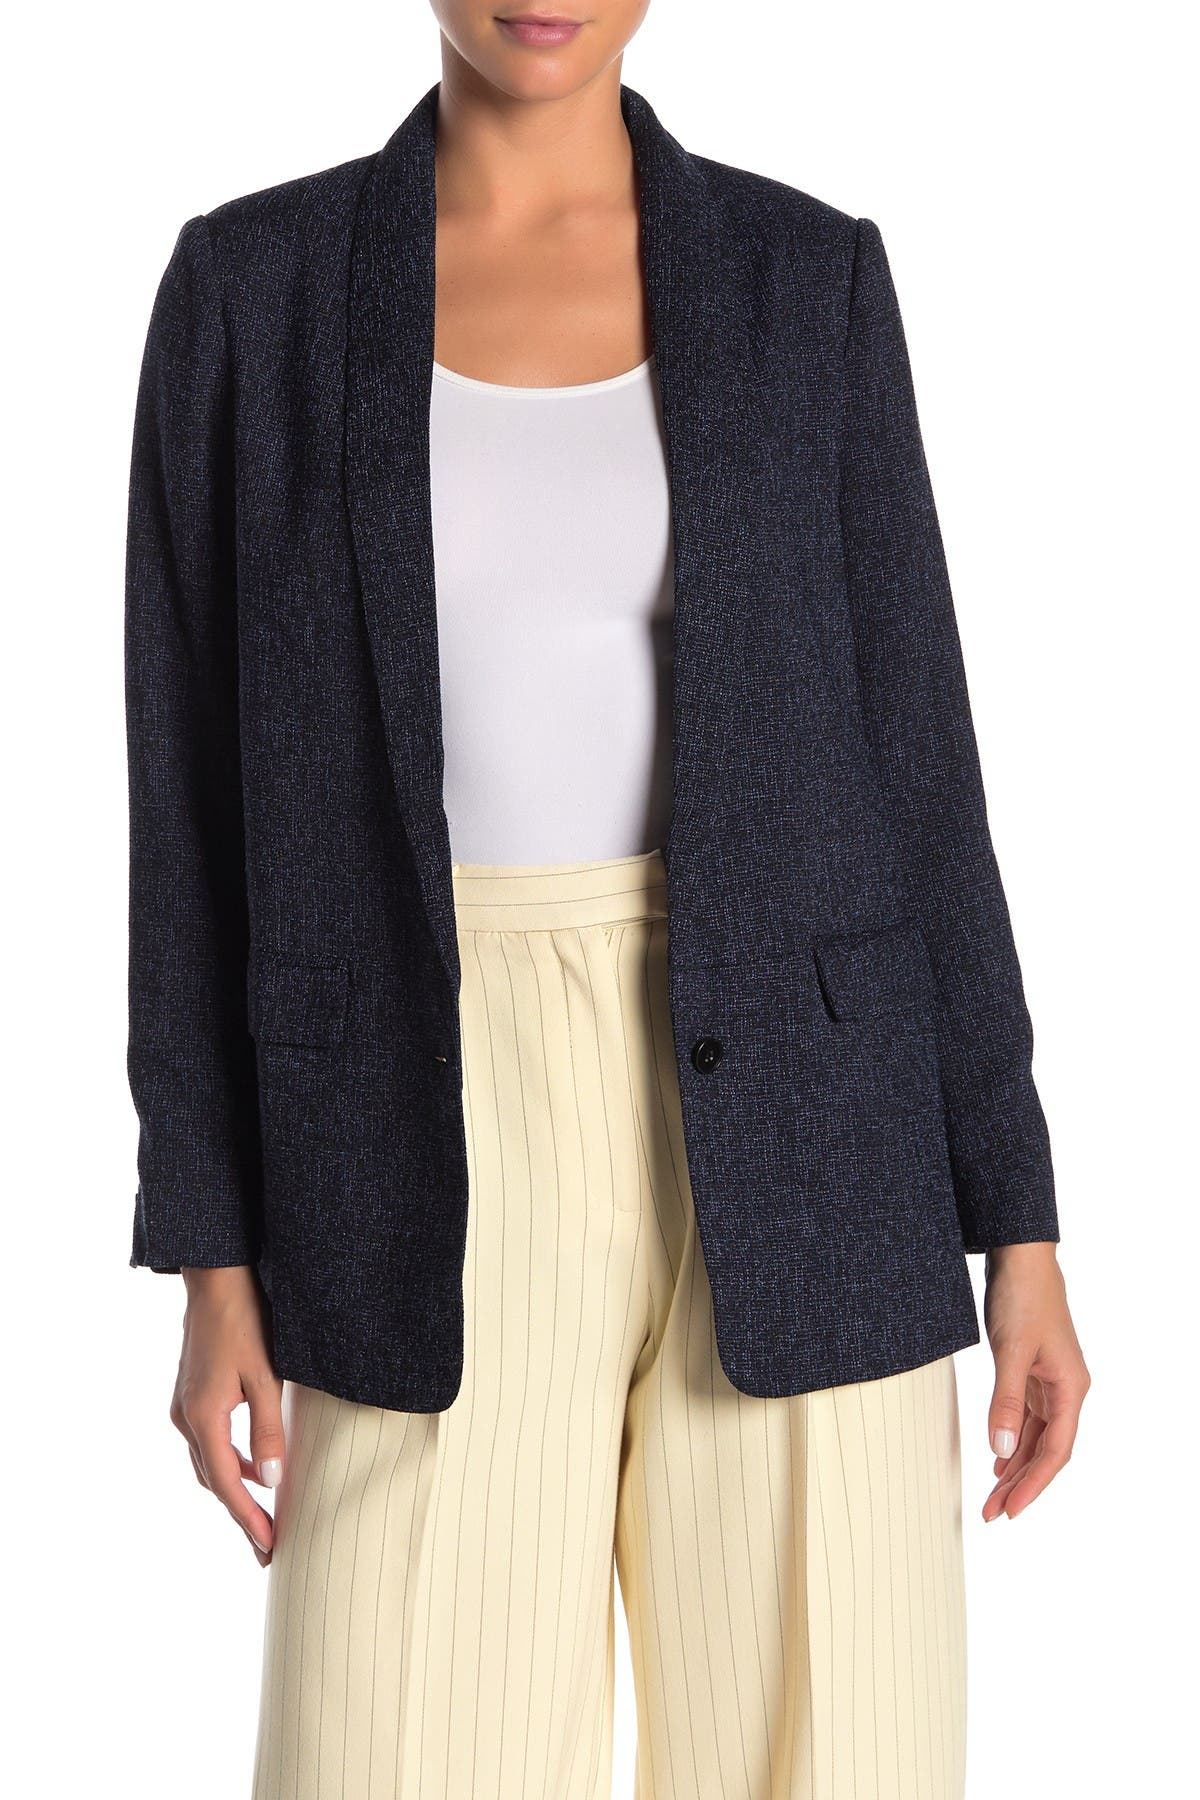 Image of FRNCH Front Single Button Blazer